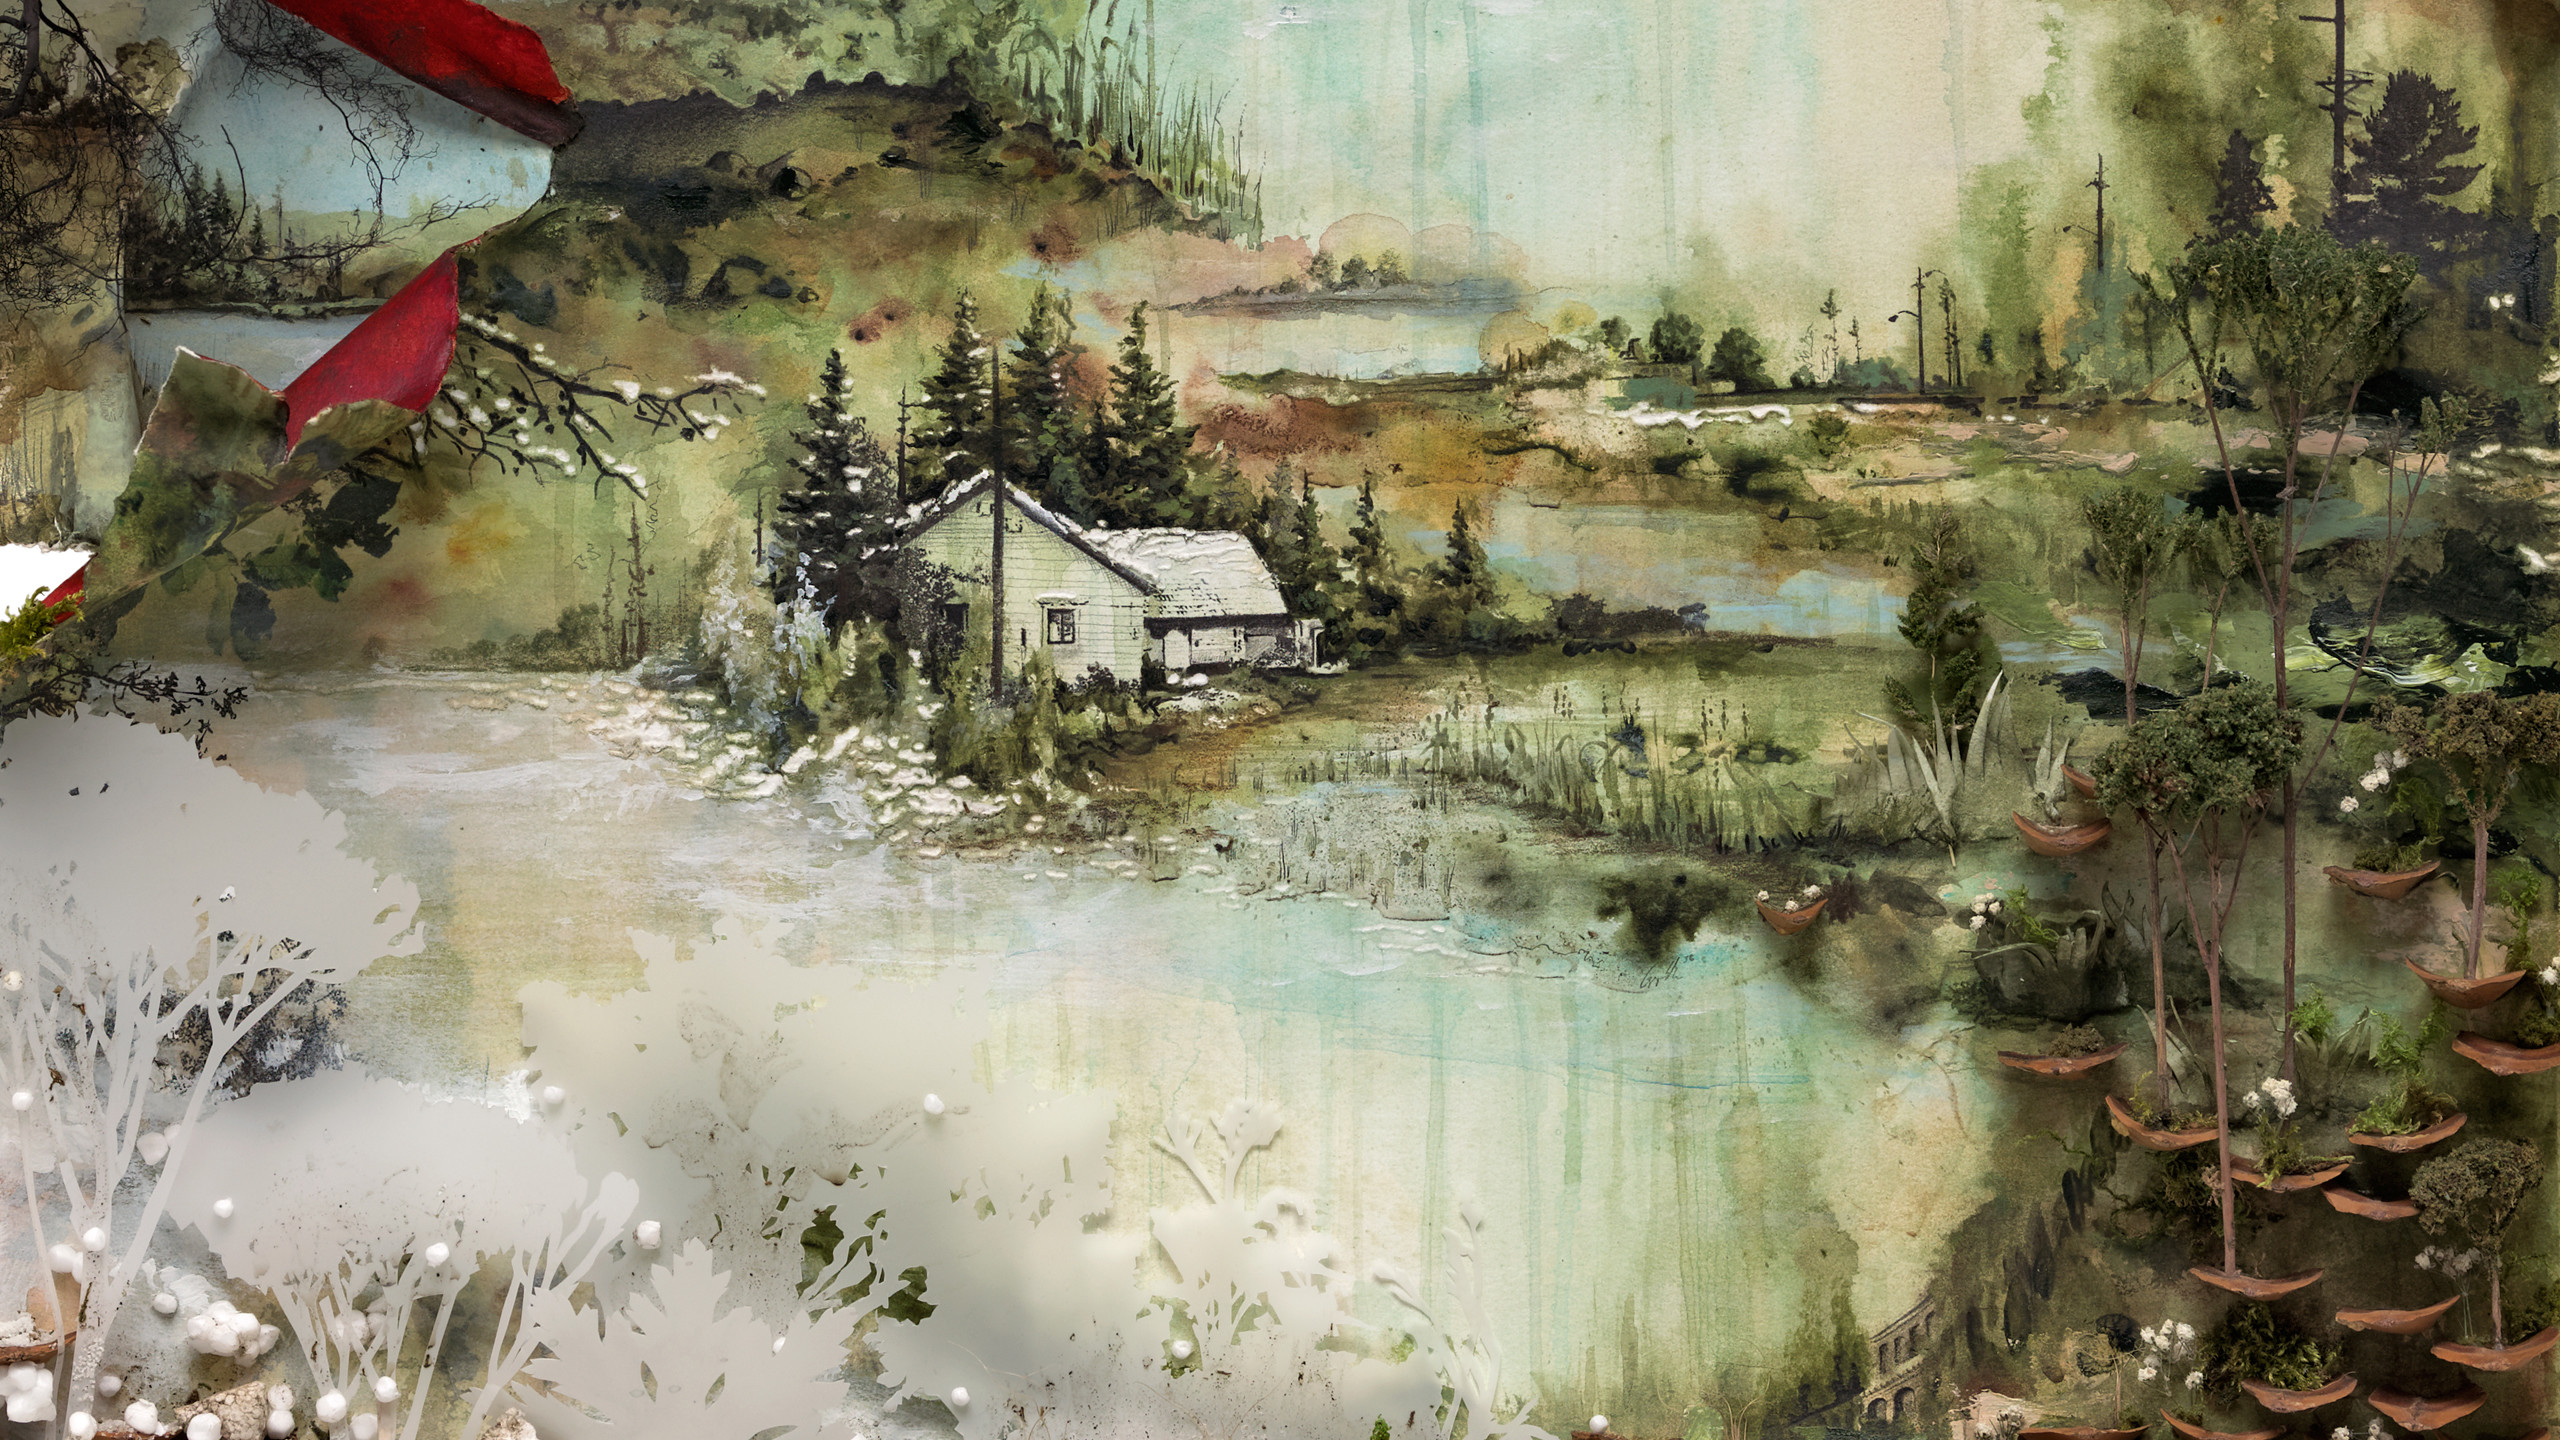 2560x1440 Bon Iver album cover by Gregory Euclide